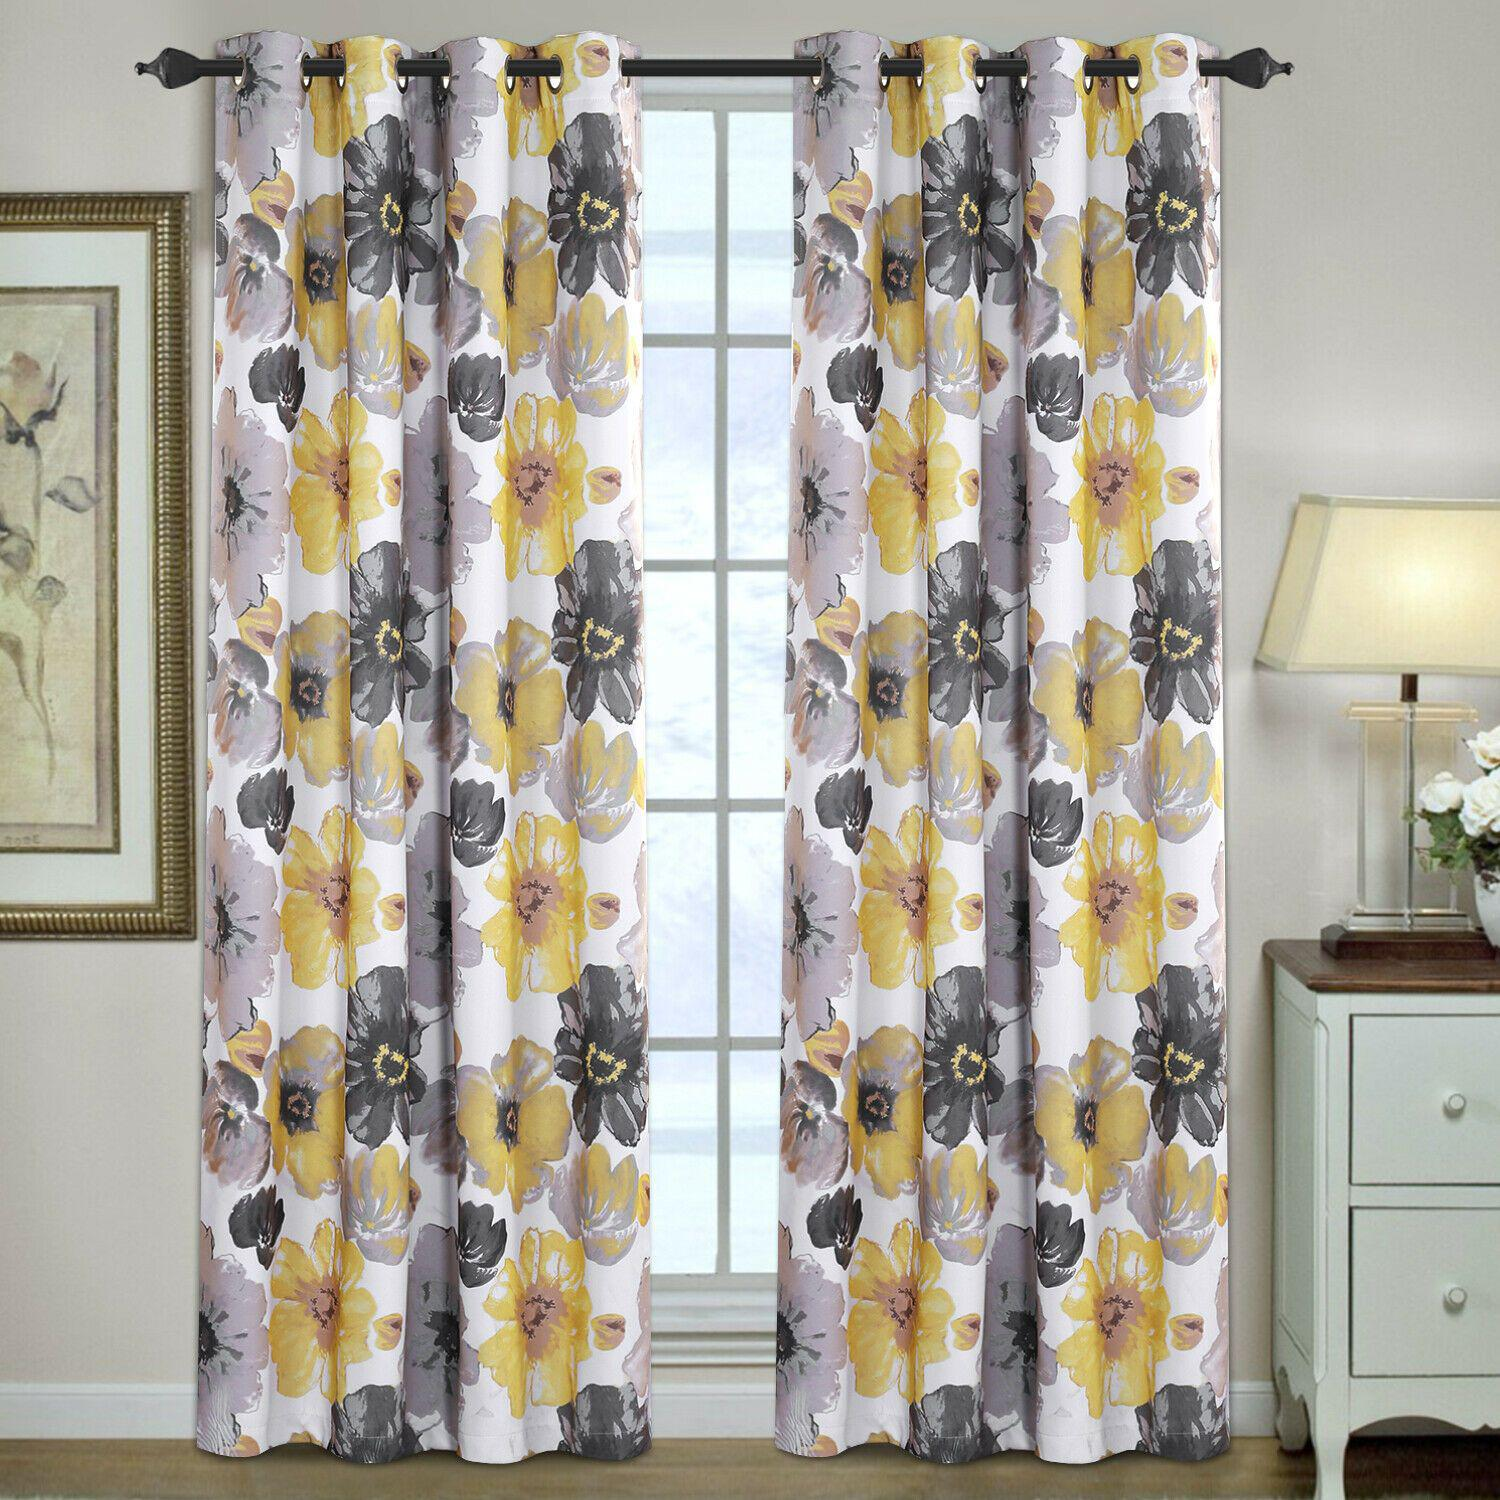 blockout curtains pair bedroom living room vintage floral eyelet curtains yellow grey floral w132cm x d160cm